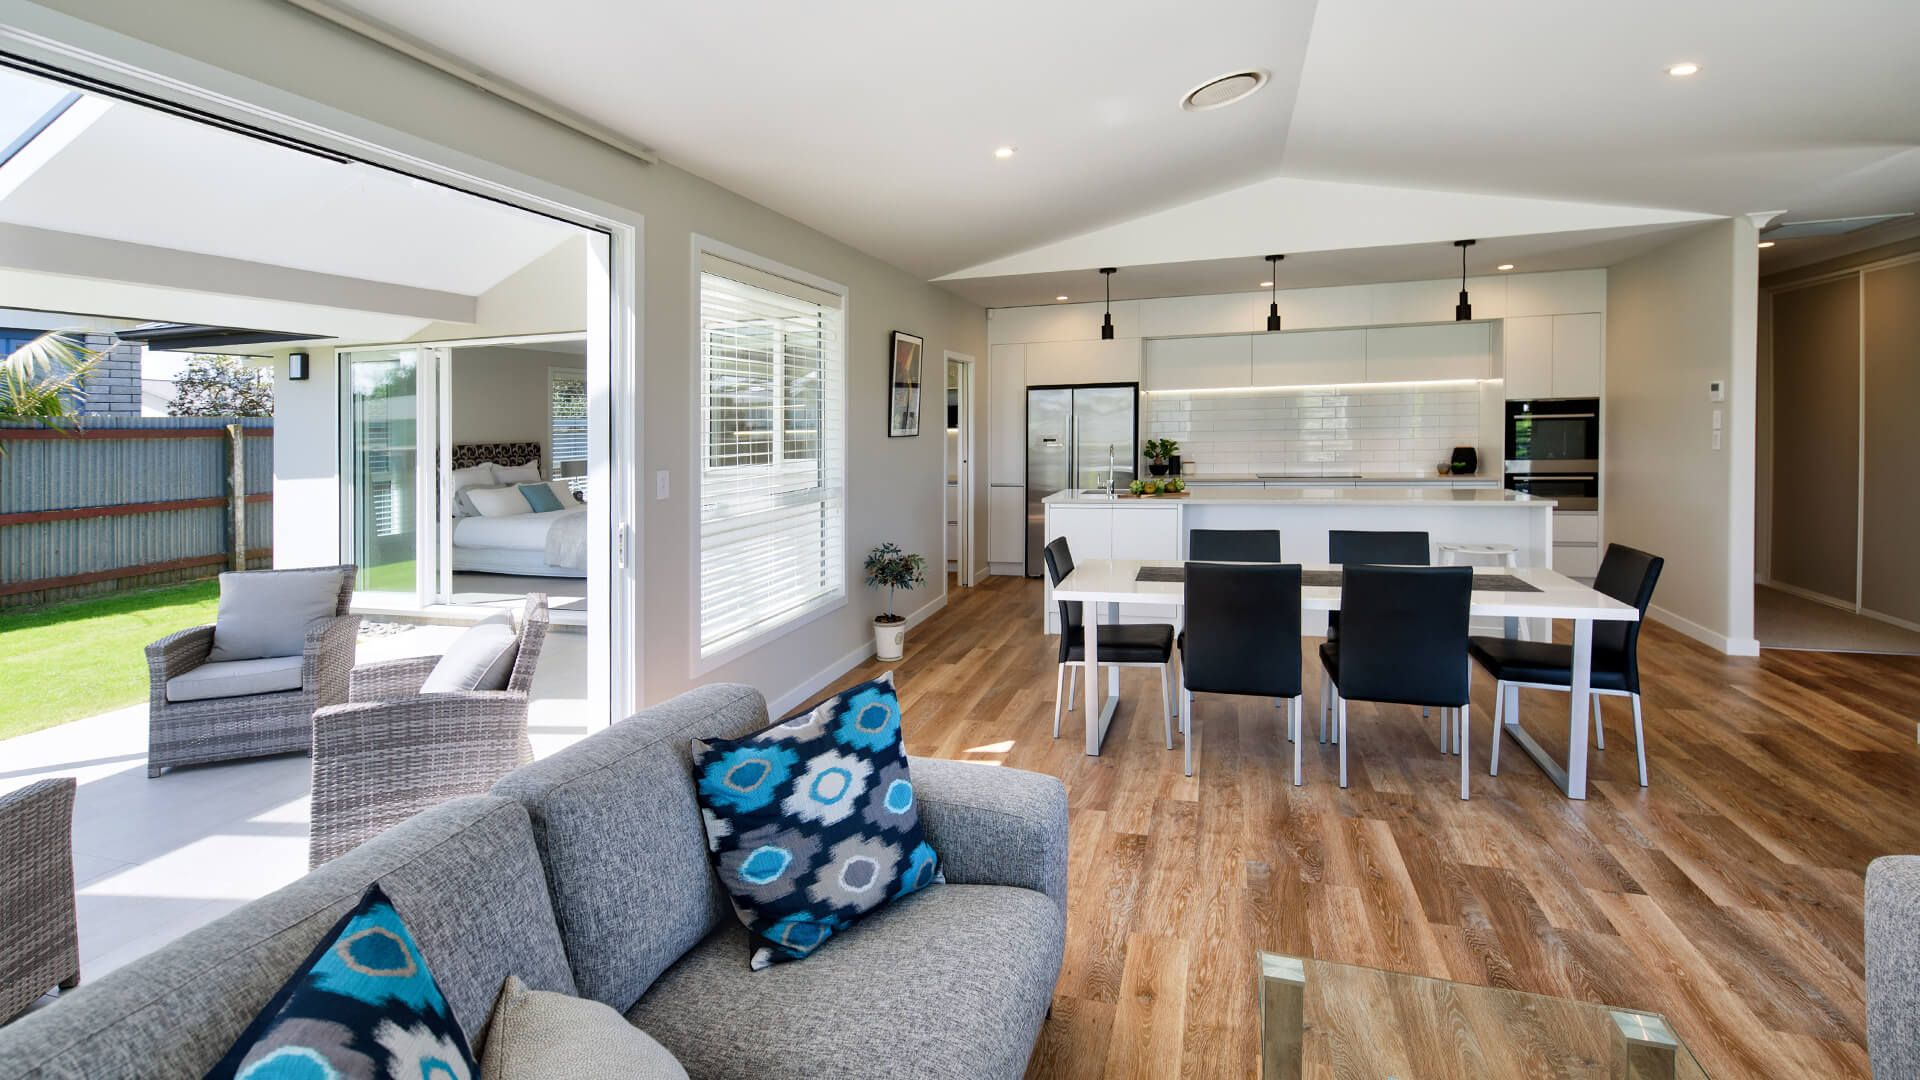 Address 31 Sussex Road Springvale Wanganui Phone 0064 6 343 5007 With Images Display Homes Home Show Home